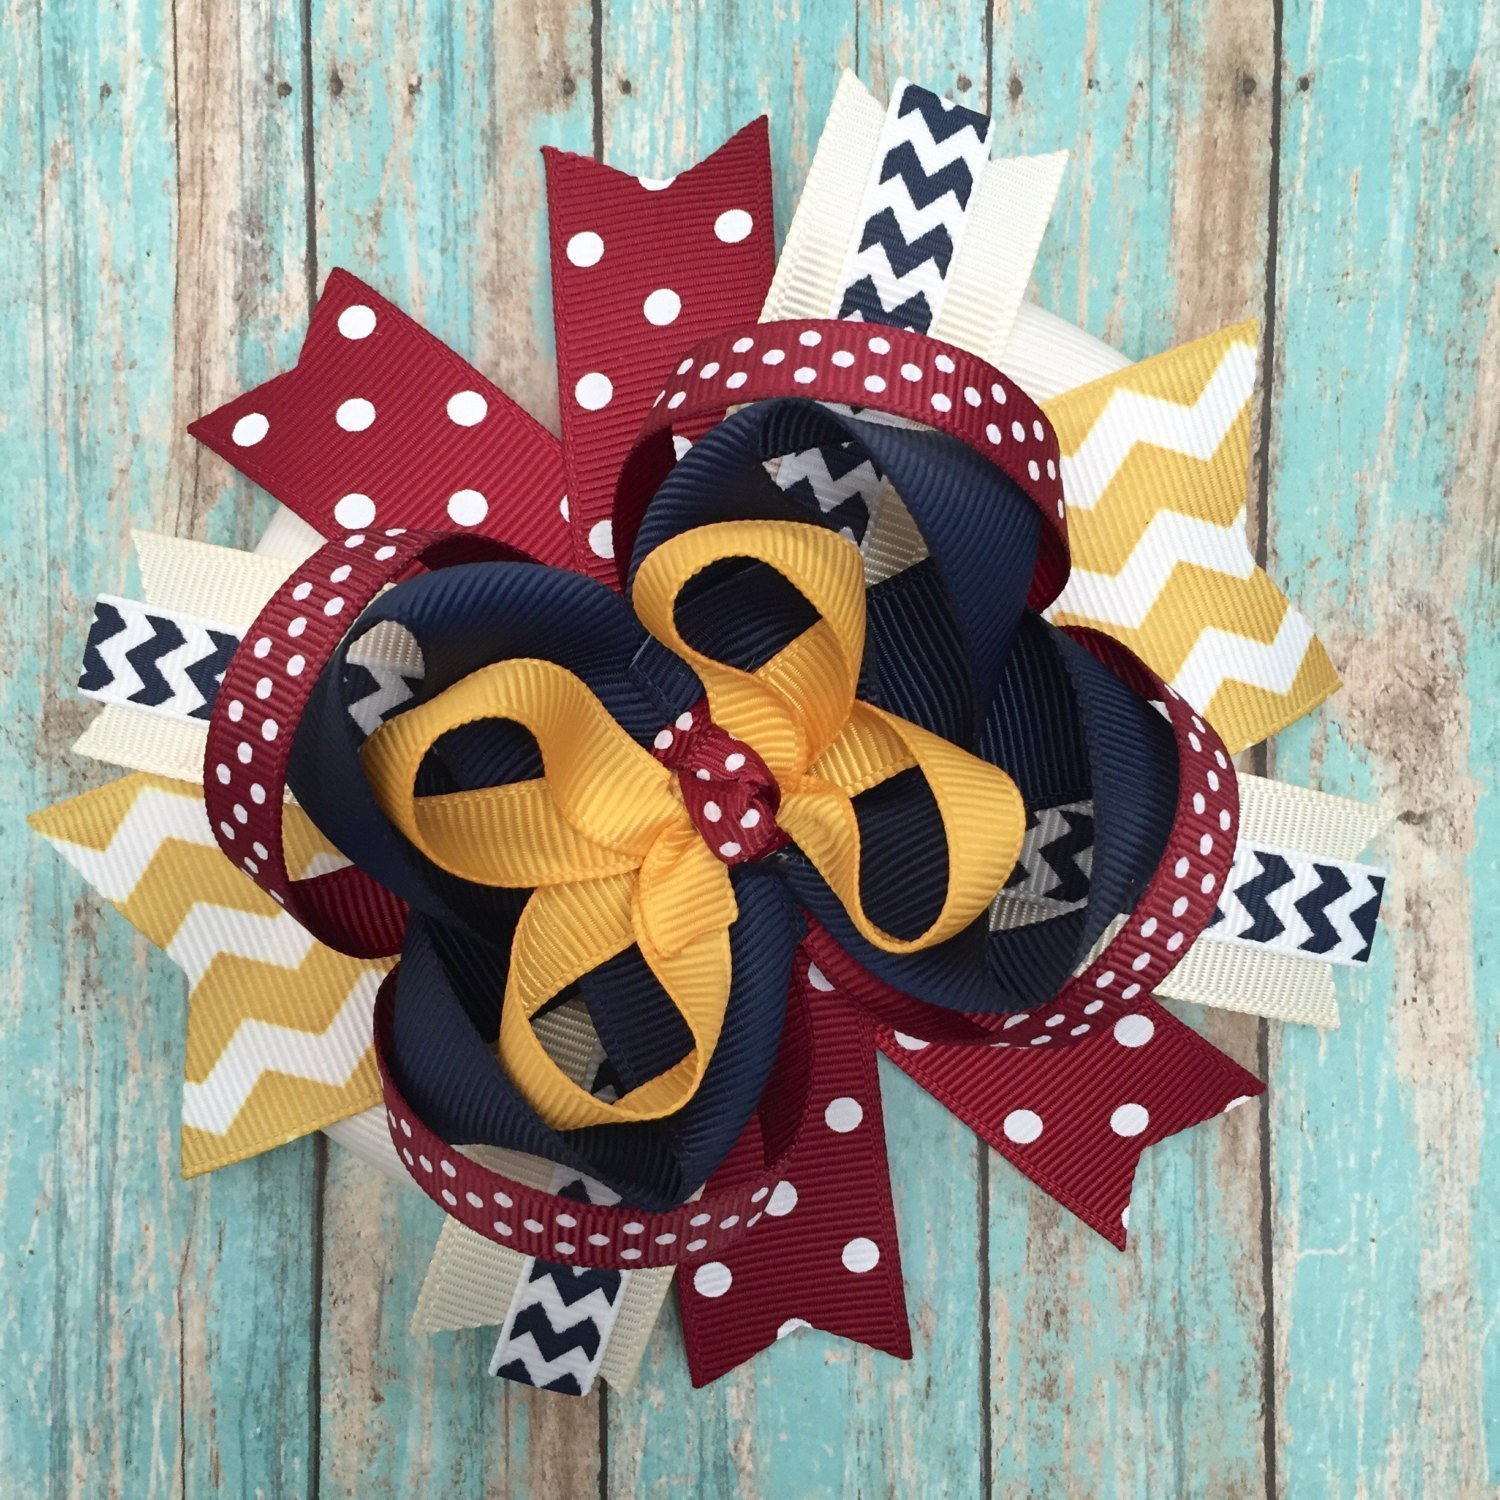 Fall Thanksgiving Mustard Yellow Maroon Burgundy Ivory Navy Hair Bow, Handmade Boutique Fall Color Hair Bow